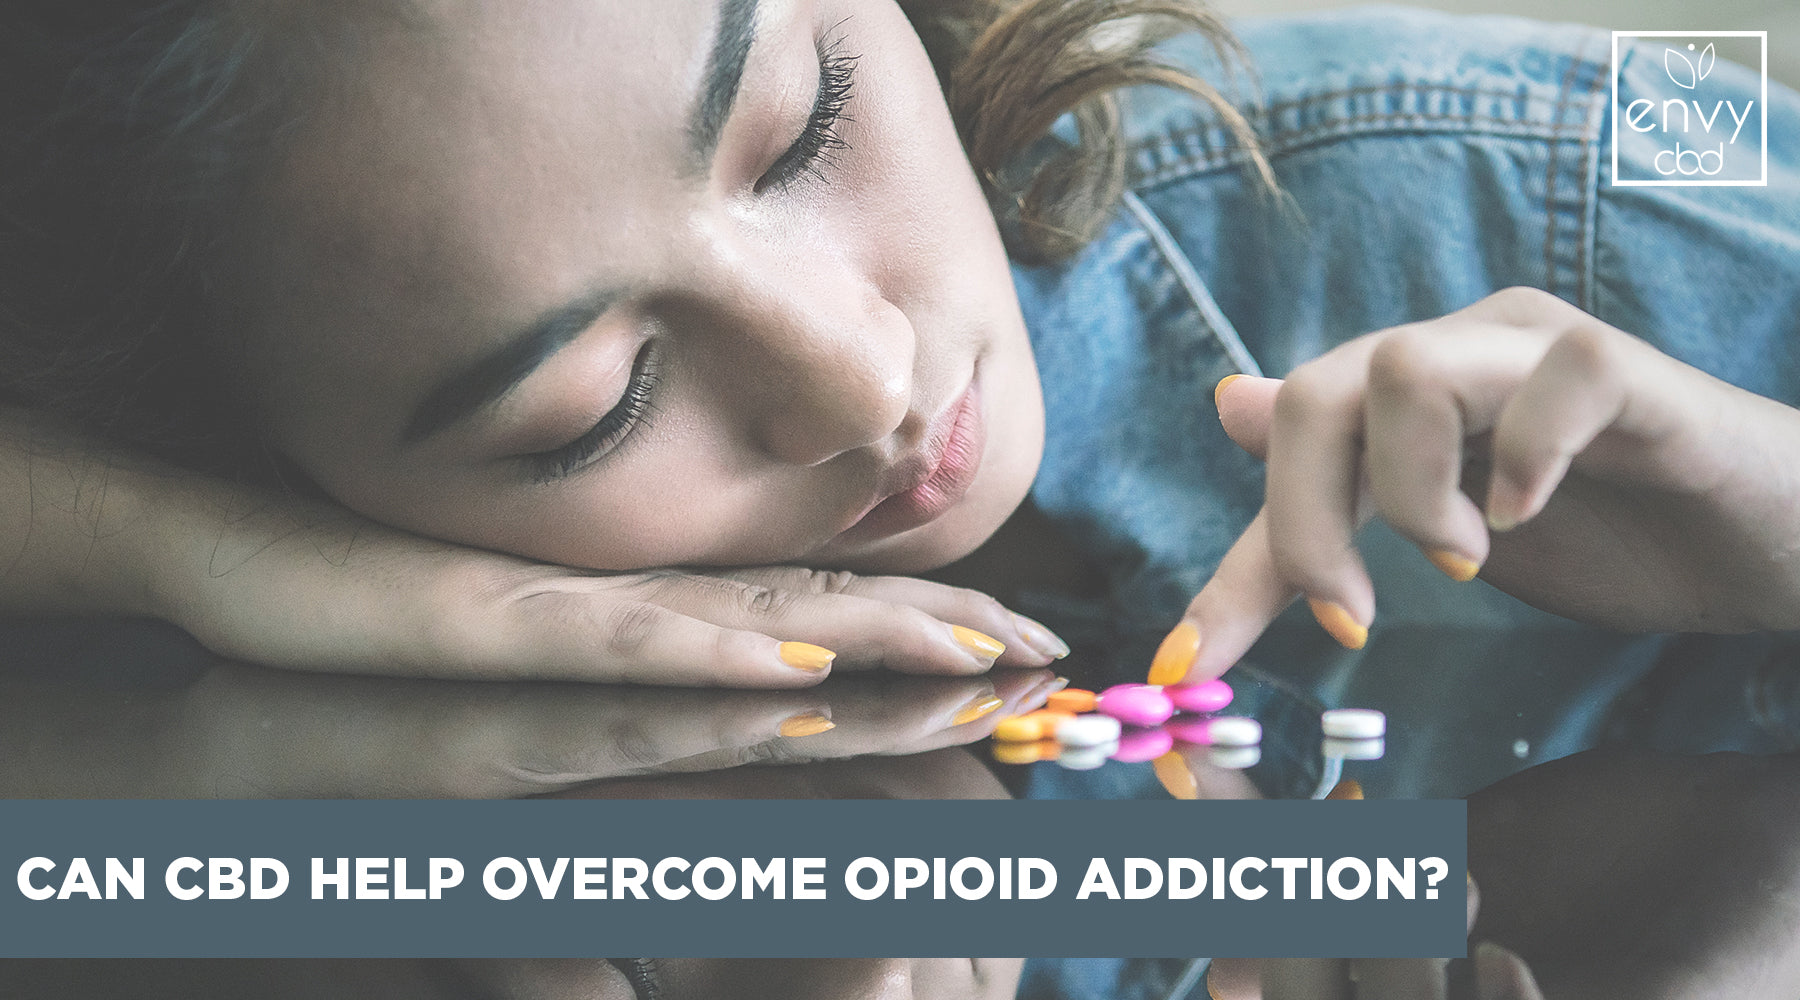 Can CBD Help Overcome Opioid Addiction?